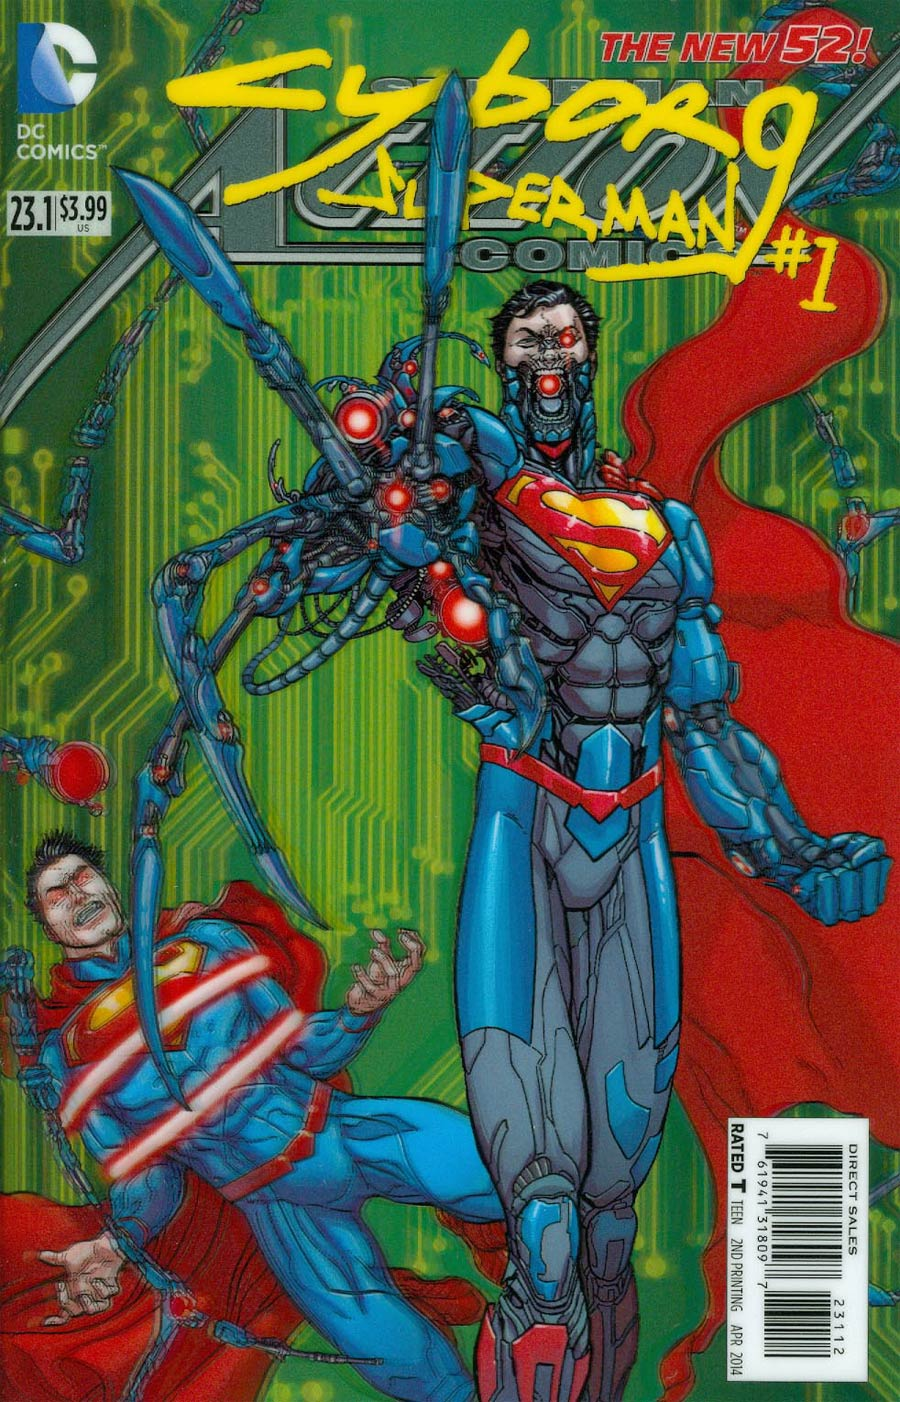 Action Comics Vol 2 #23.1 Cyborg Superman Cover C 2nd Ptg 3D Motion Cover